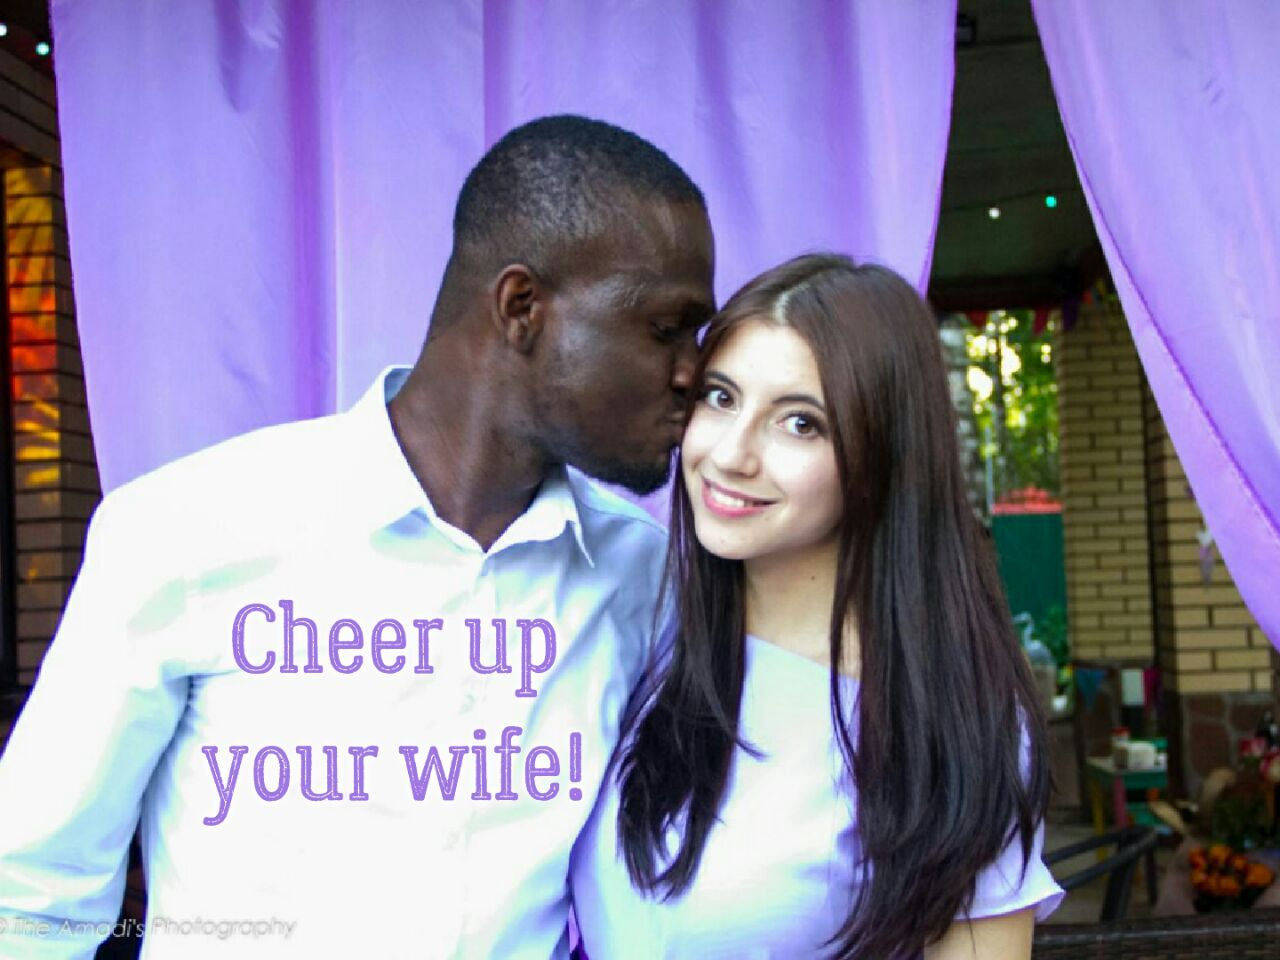 Go And Cheer Up Your Wife